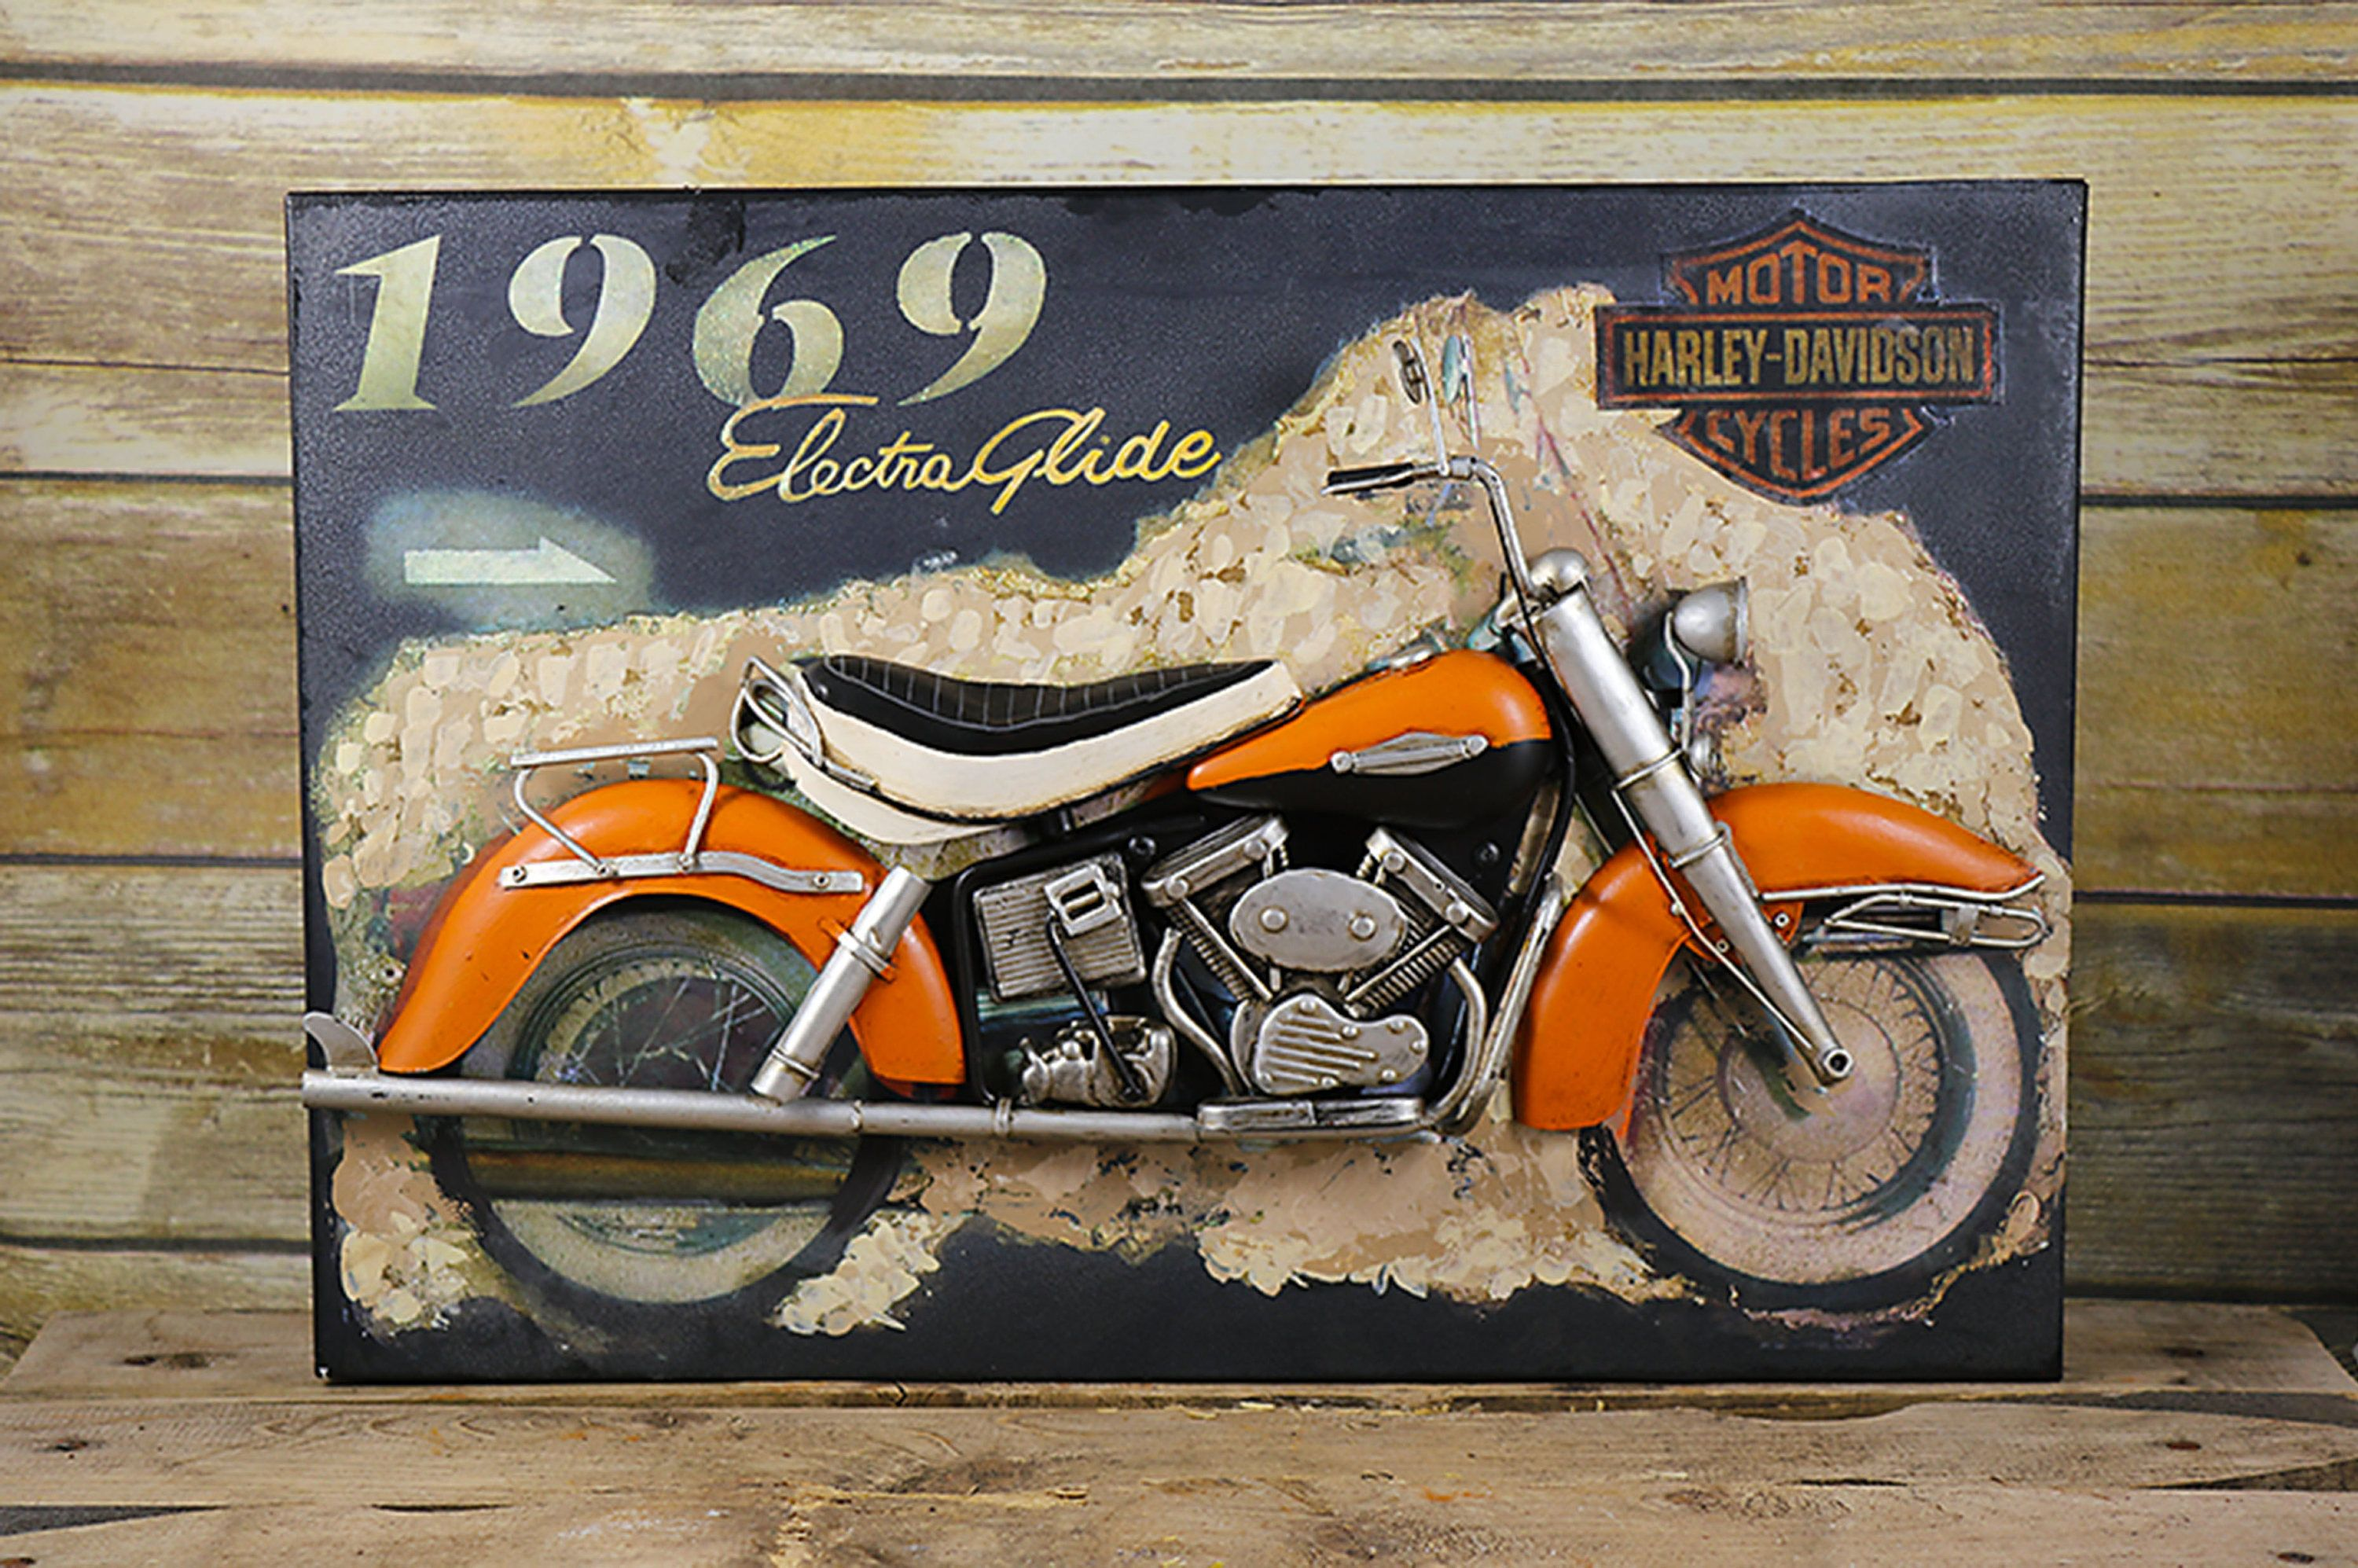 Harley Davidson Art, Metal Wall Art, 3D Wall Art, Vintage Motorcycle Art,